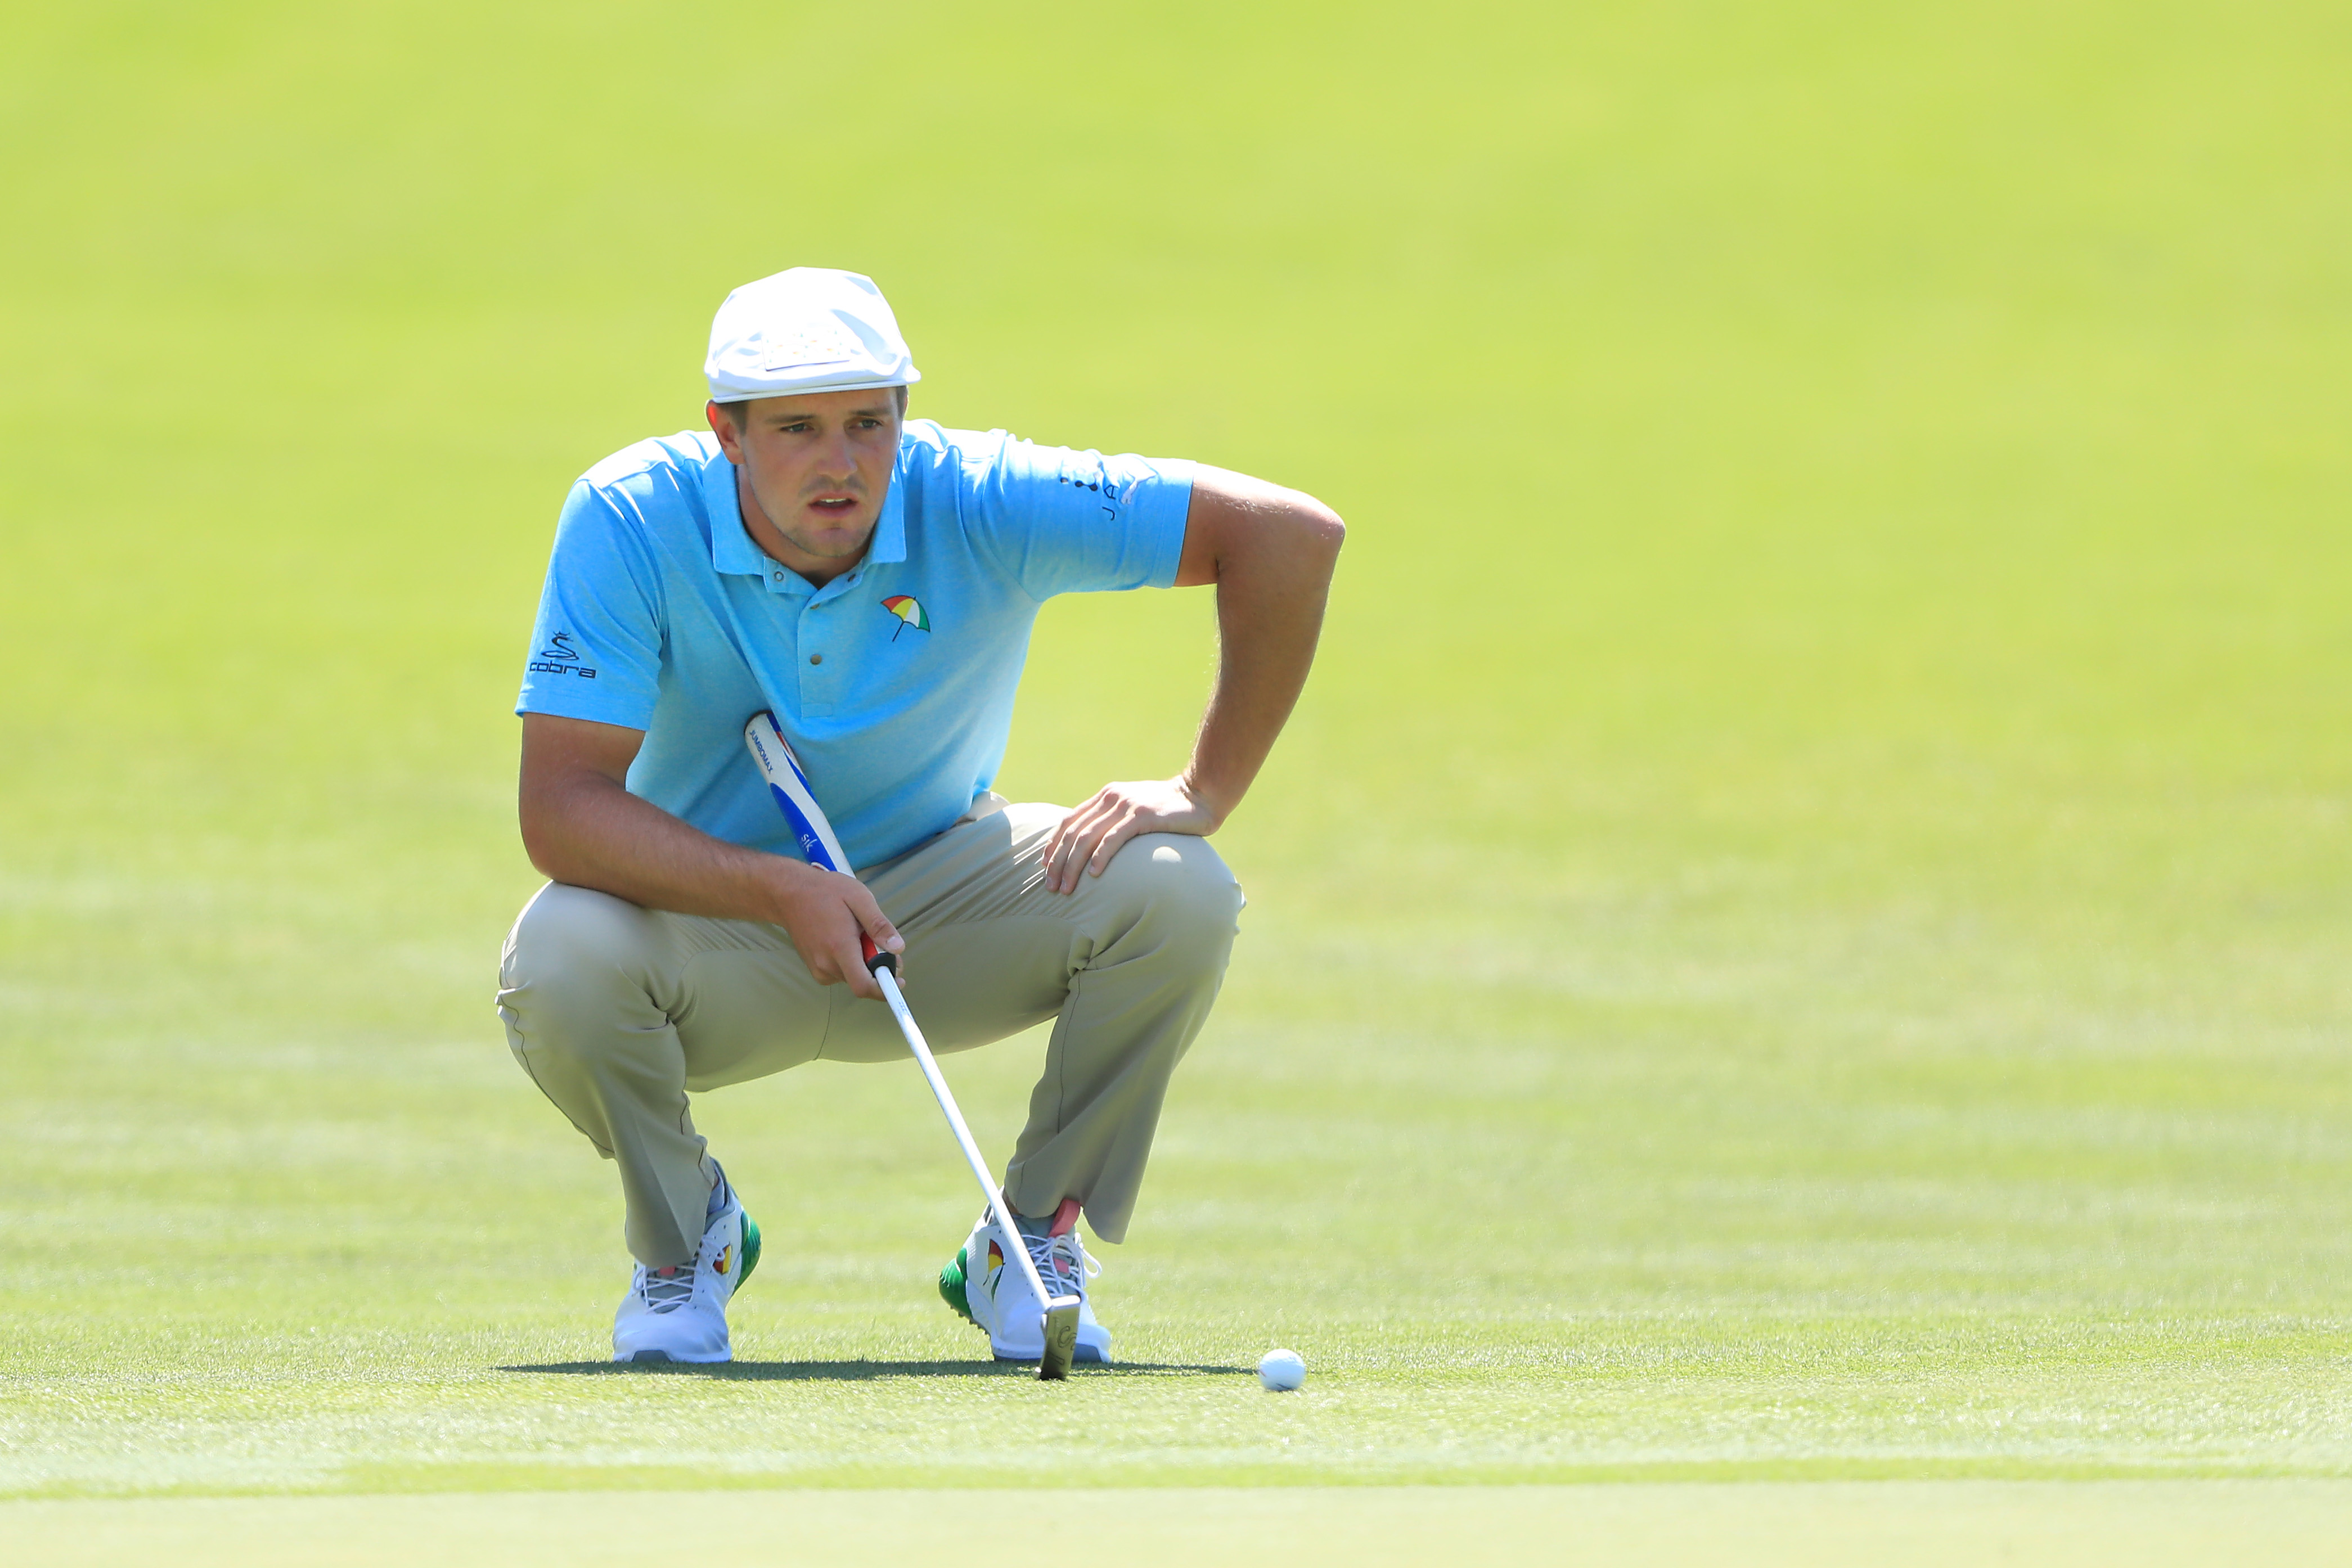 ORLANDO, FLORIDA - MARCH 07: Bryson DeChambeau of the United States lines up a putt on the second hole during the first round of the Arnold Palmer Invitational Presented by Mastercard at the Bay Hill Club on March 07, 2019 in Orlando, Florida. (Photo by Sam Greenwood/Getty Images)